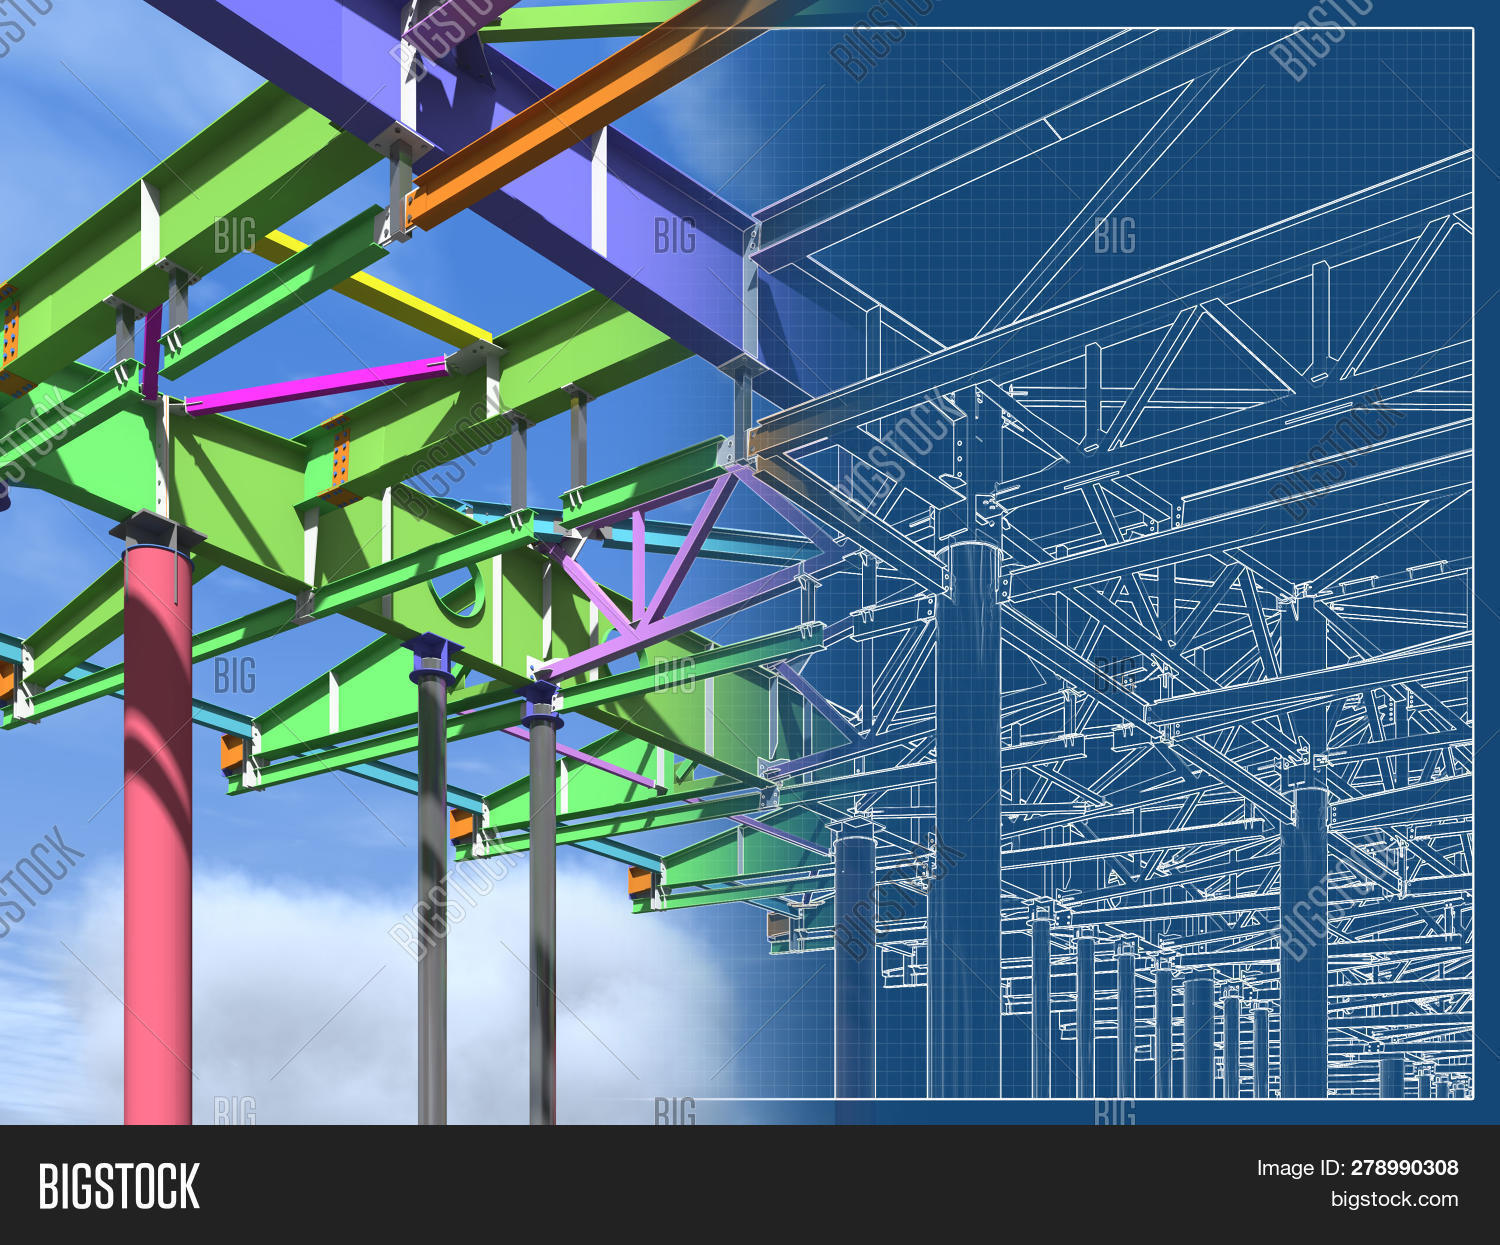 3d,BIM,architecture,background,beam,blueprint,bolt,brown,building,business,channel,chimney,construction,designer,down,drawing,energy,engineer,engineering,equipment,exterior,factory,floor,frame,framework,industrial,industry,installation,iron,metal,model,modern,pipe,plant,project,railing,roof,site,sky,stair,staircase,steel,structural,structure,surveys,technology,urban,view,wire